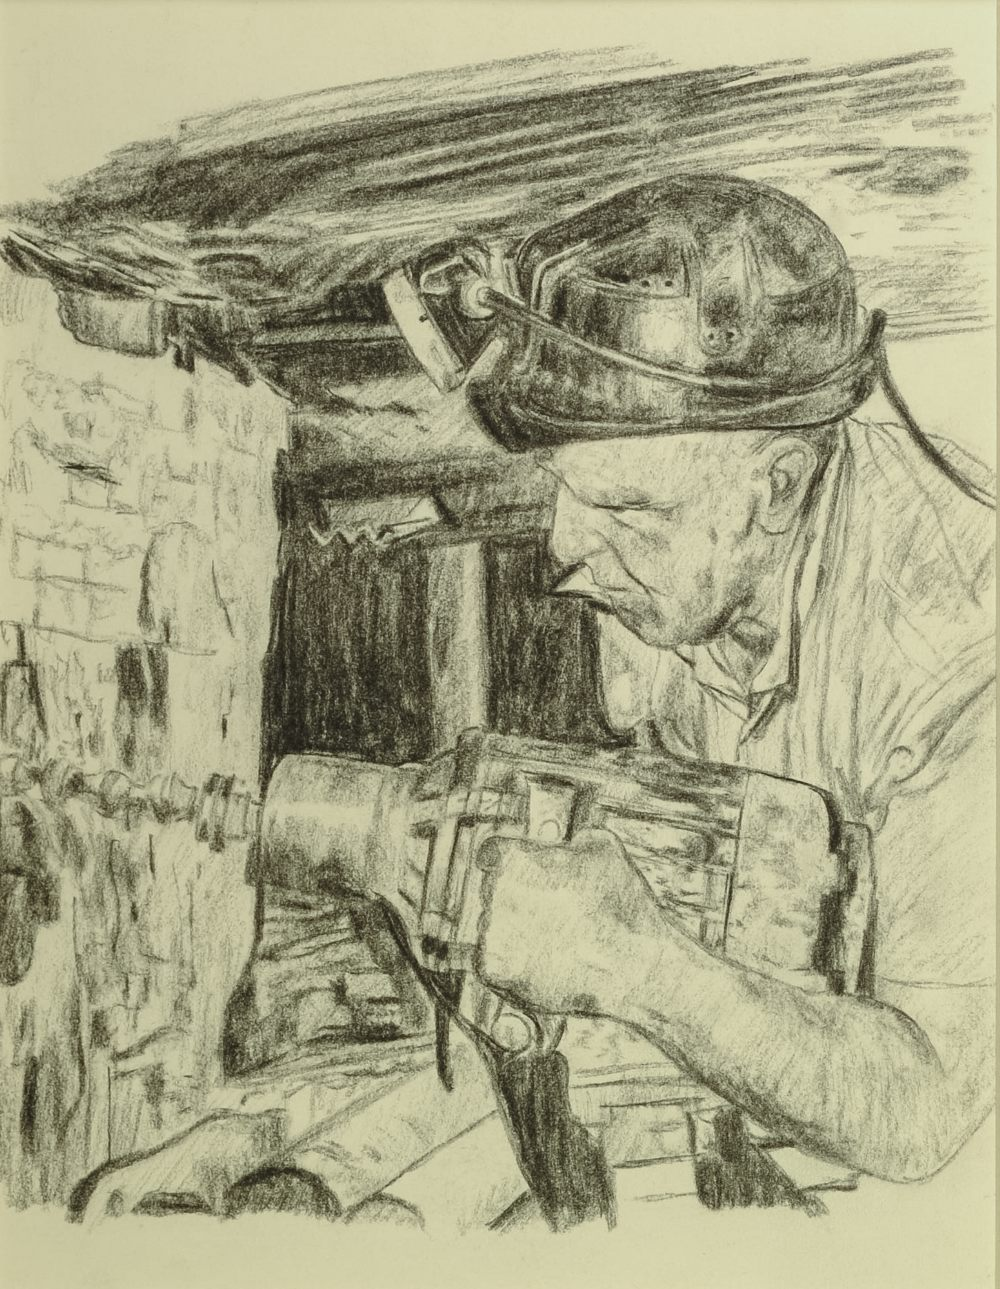 """Lot 68 - ROGER HAMPSON (1925-1996) PENCIL DRAWING Miner operating a drill at the coal face 9 1/2"""" x 7 1/4"""" ("""